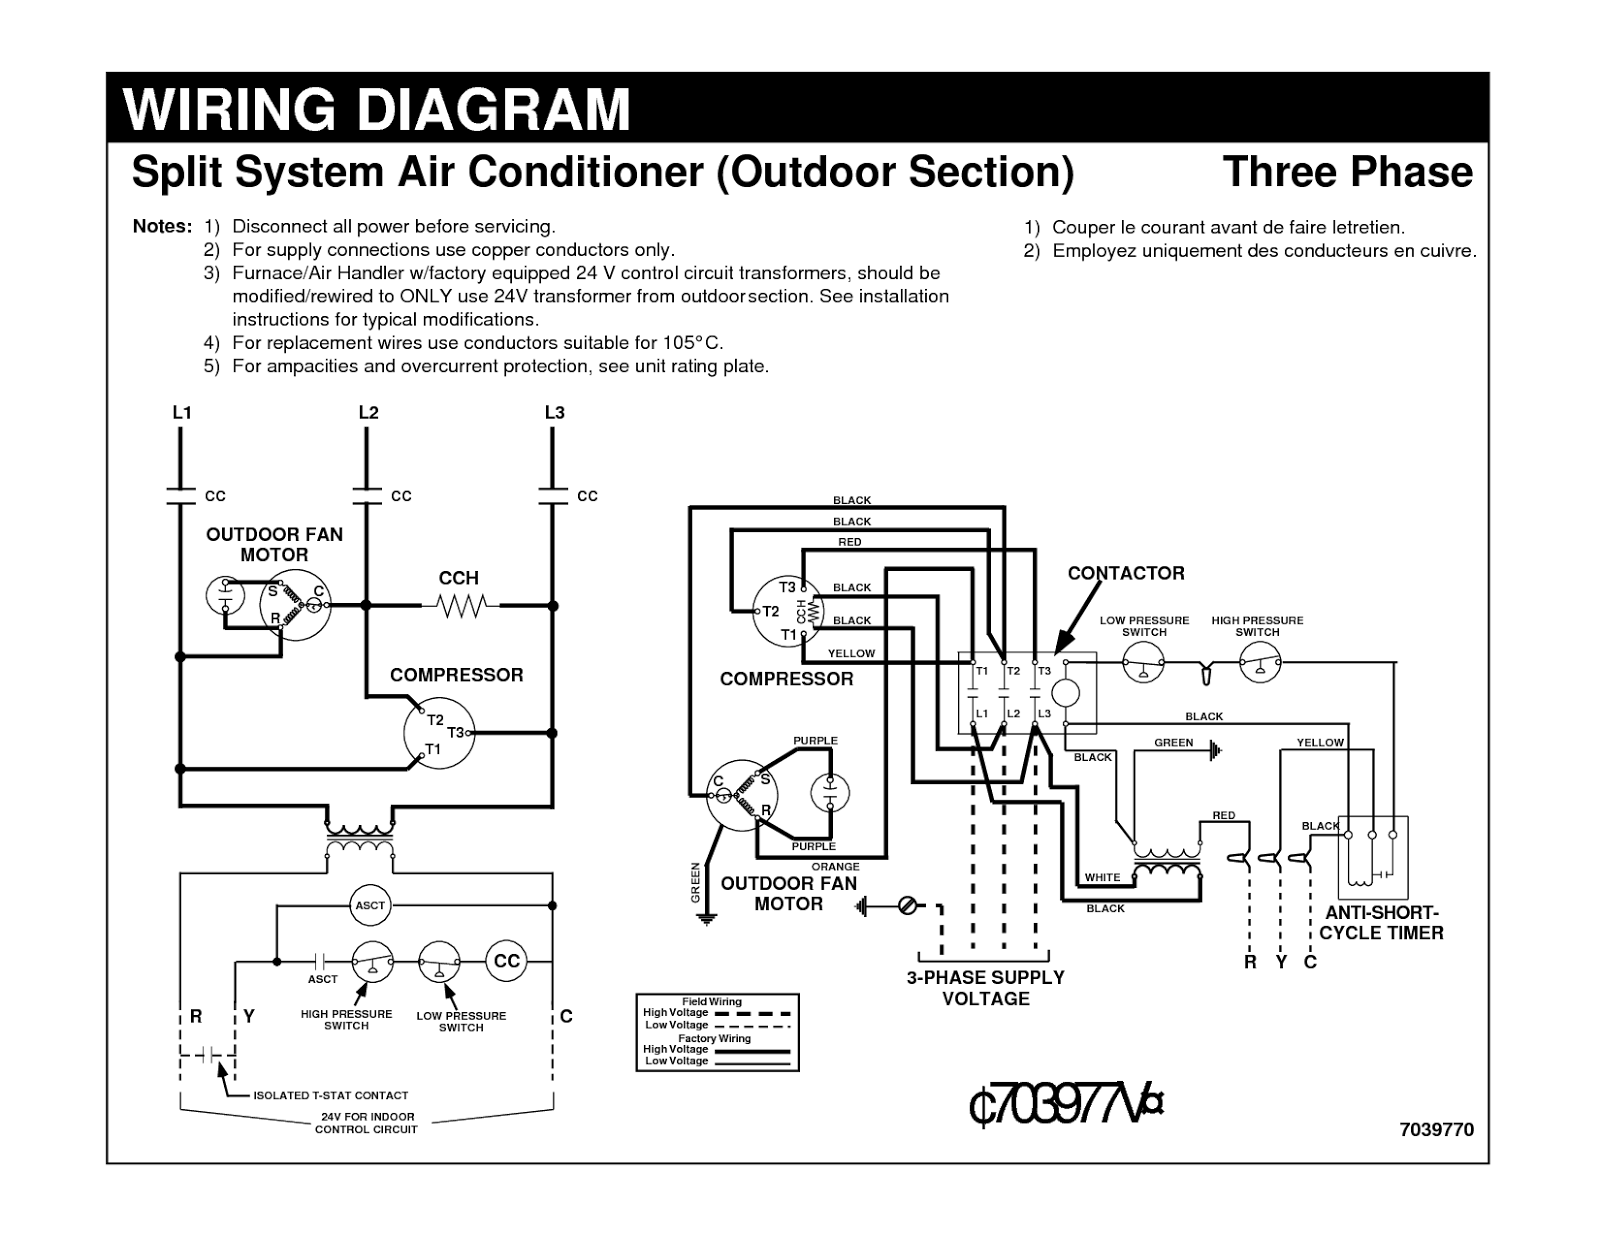 wiring+diagram+in+the+user+manual red dot air conditioner wiring diagram air handler wiring diagram electrical wiring schematic at alyssarenee.co